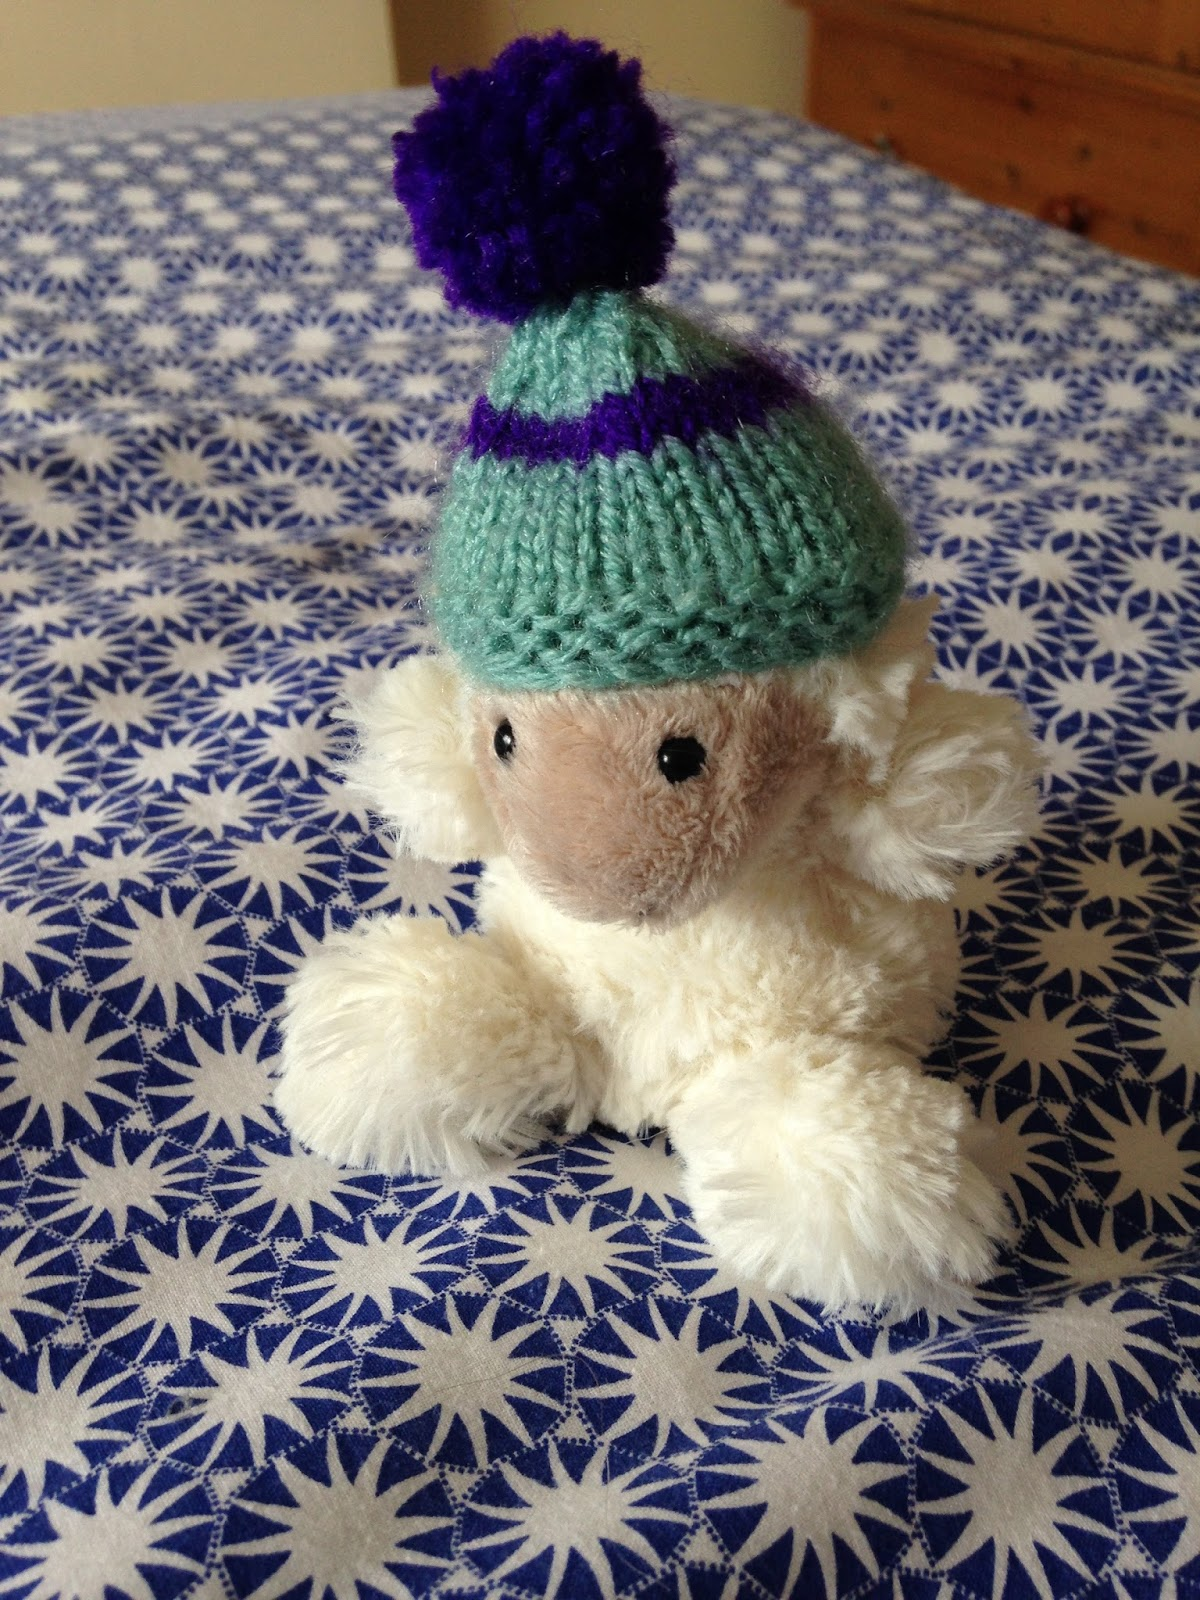 Small teddy on a bed wearing a hat